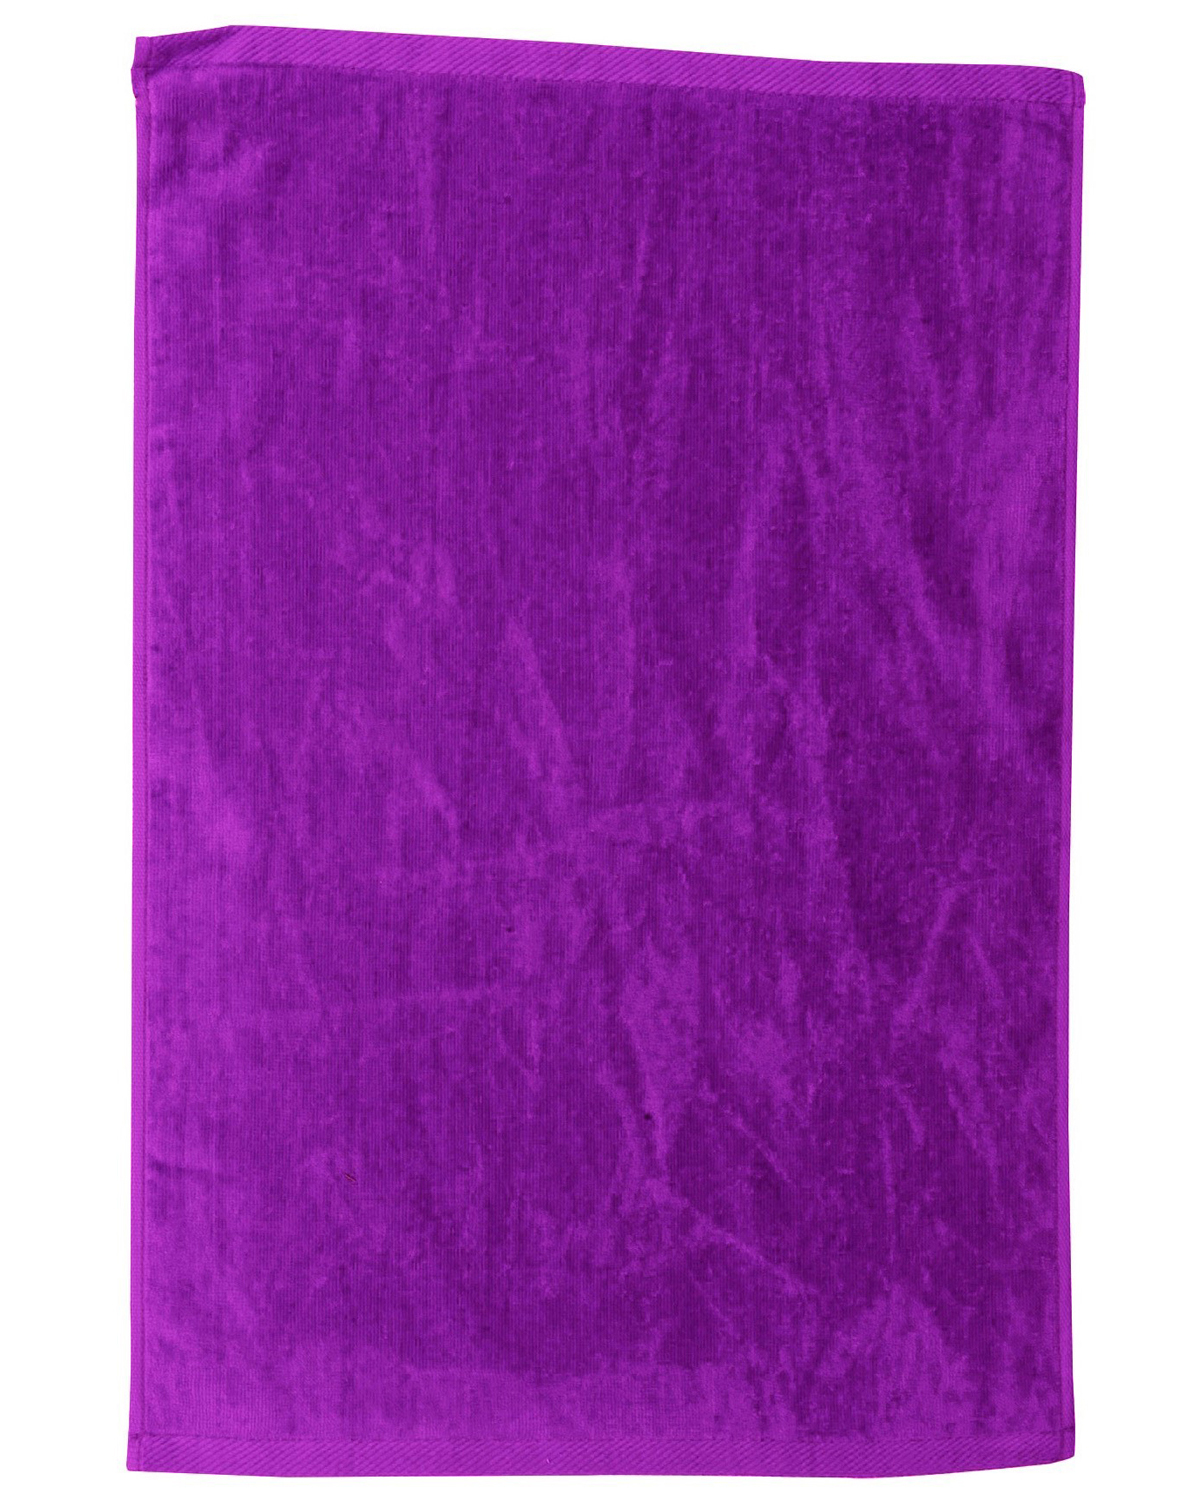 TRU35 Platinum Collection Sport Towel